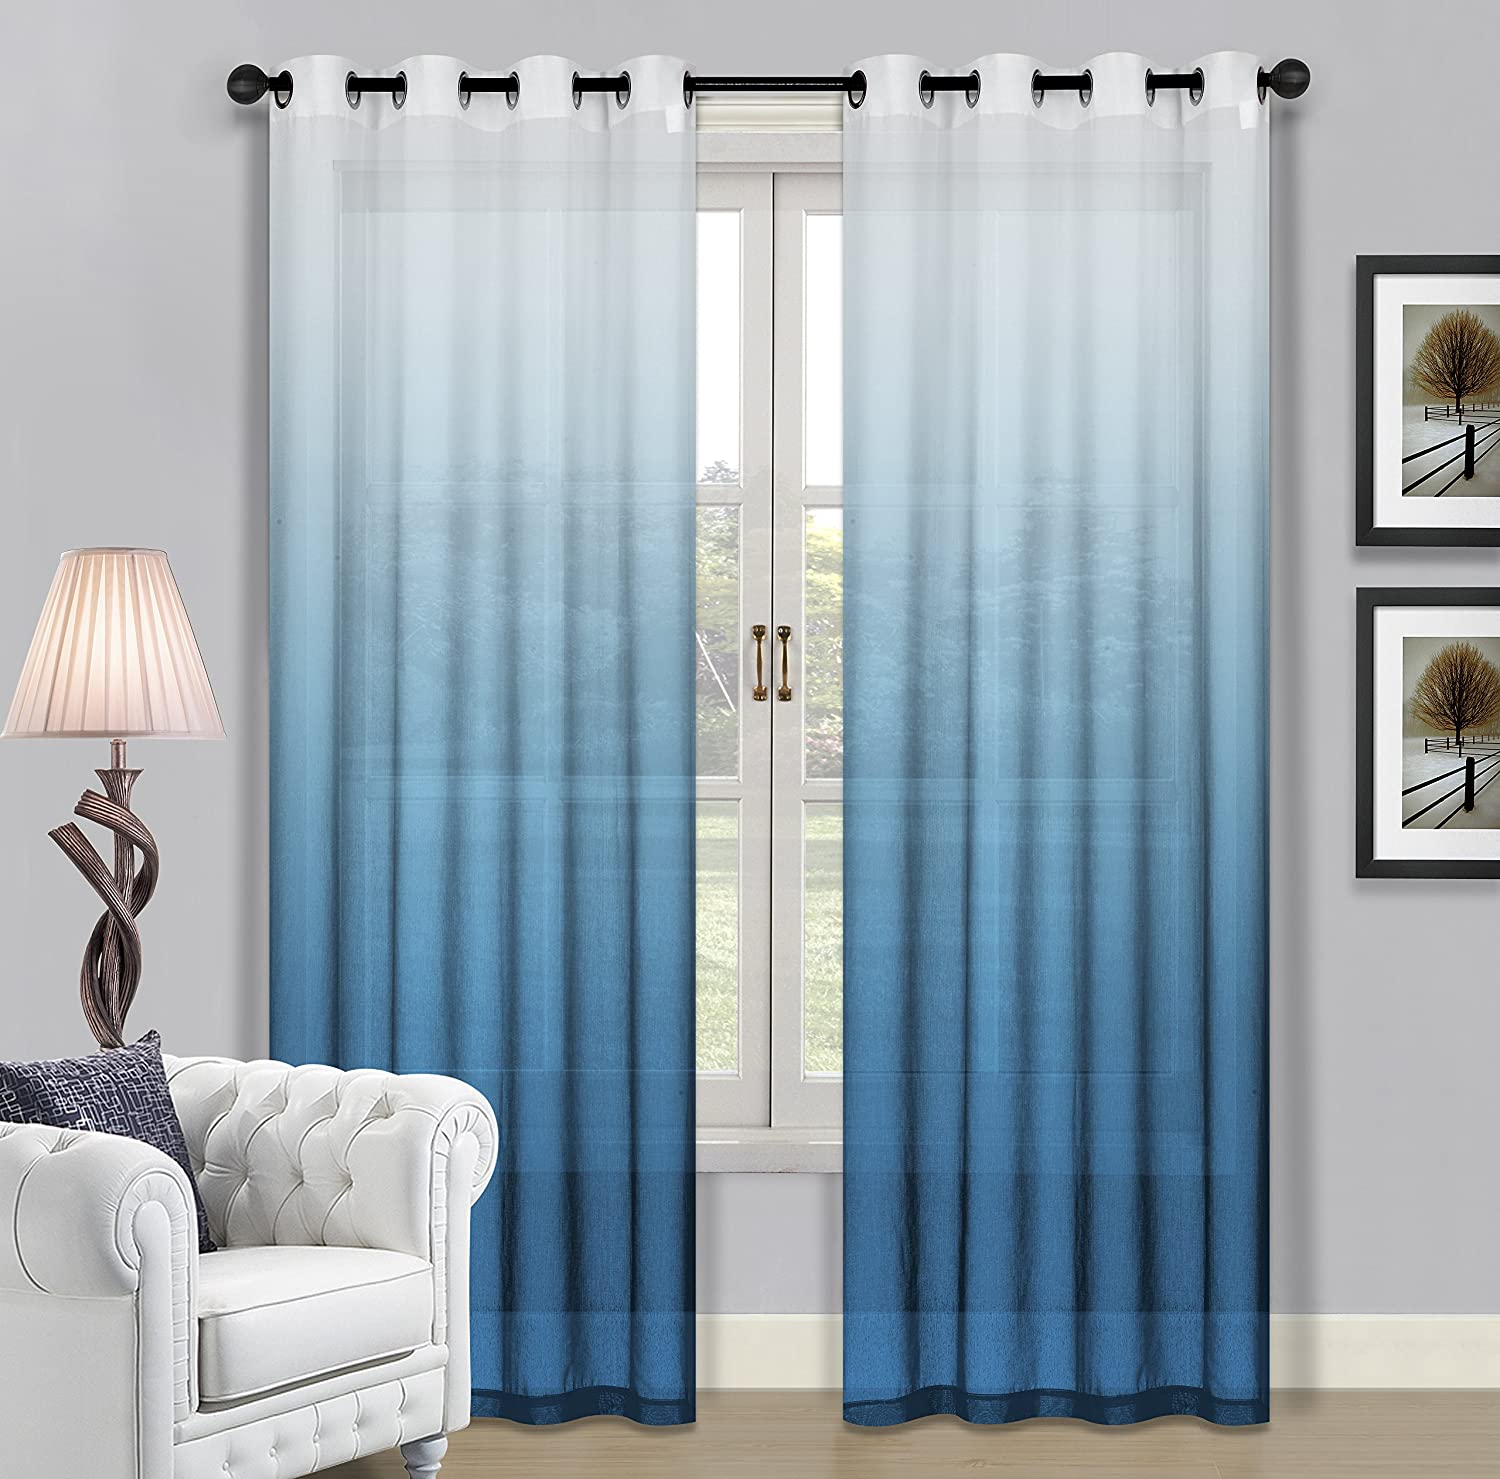 Amazon Beverly Hills Window Treatment Collection Fabric Ombre Sheer Grommet Panels A Pair Of 2 52inch Width 84inch Length Each Panel